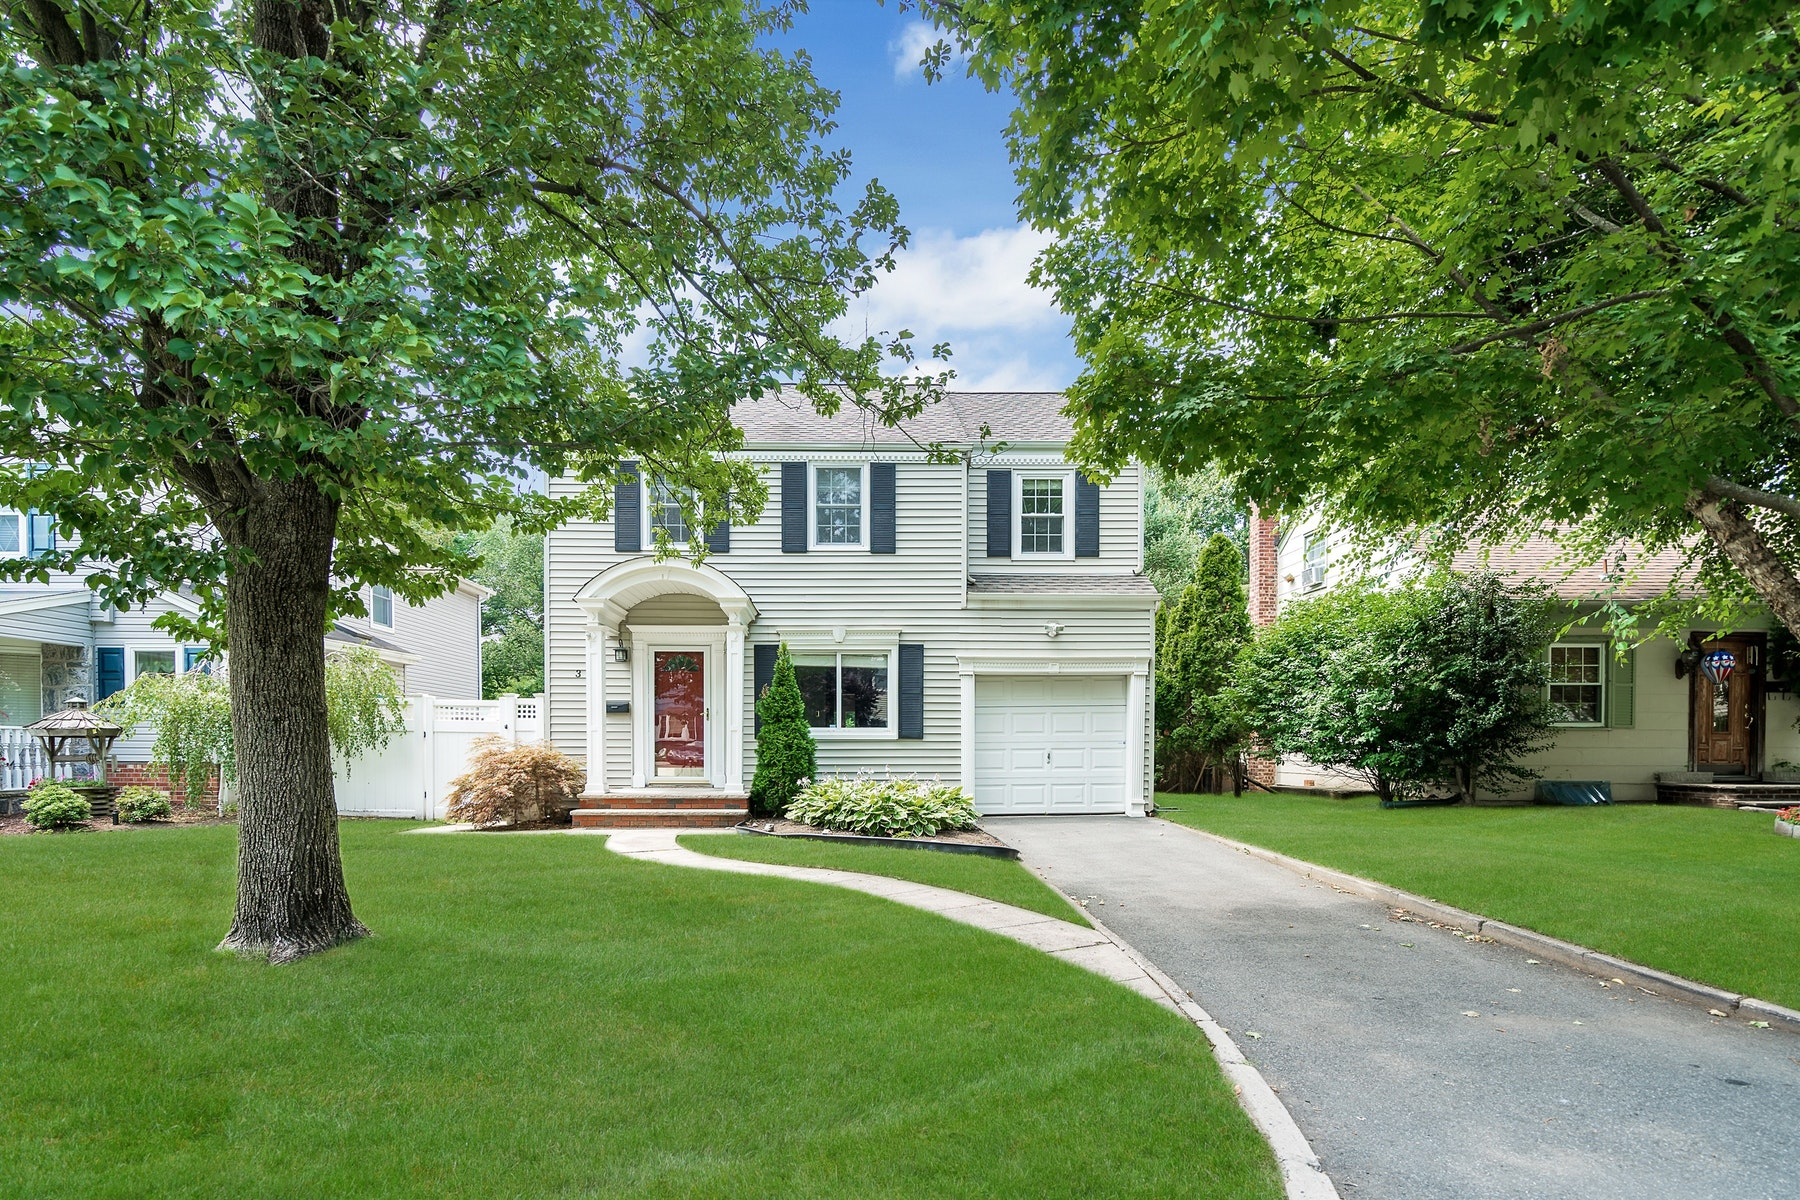 Single Family Home for Sale at A Beautiful Renovated Center Hall Colonial. 399 Terhune Avenue, Paramus, New Jersey 07452 United States